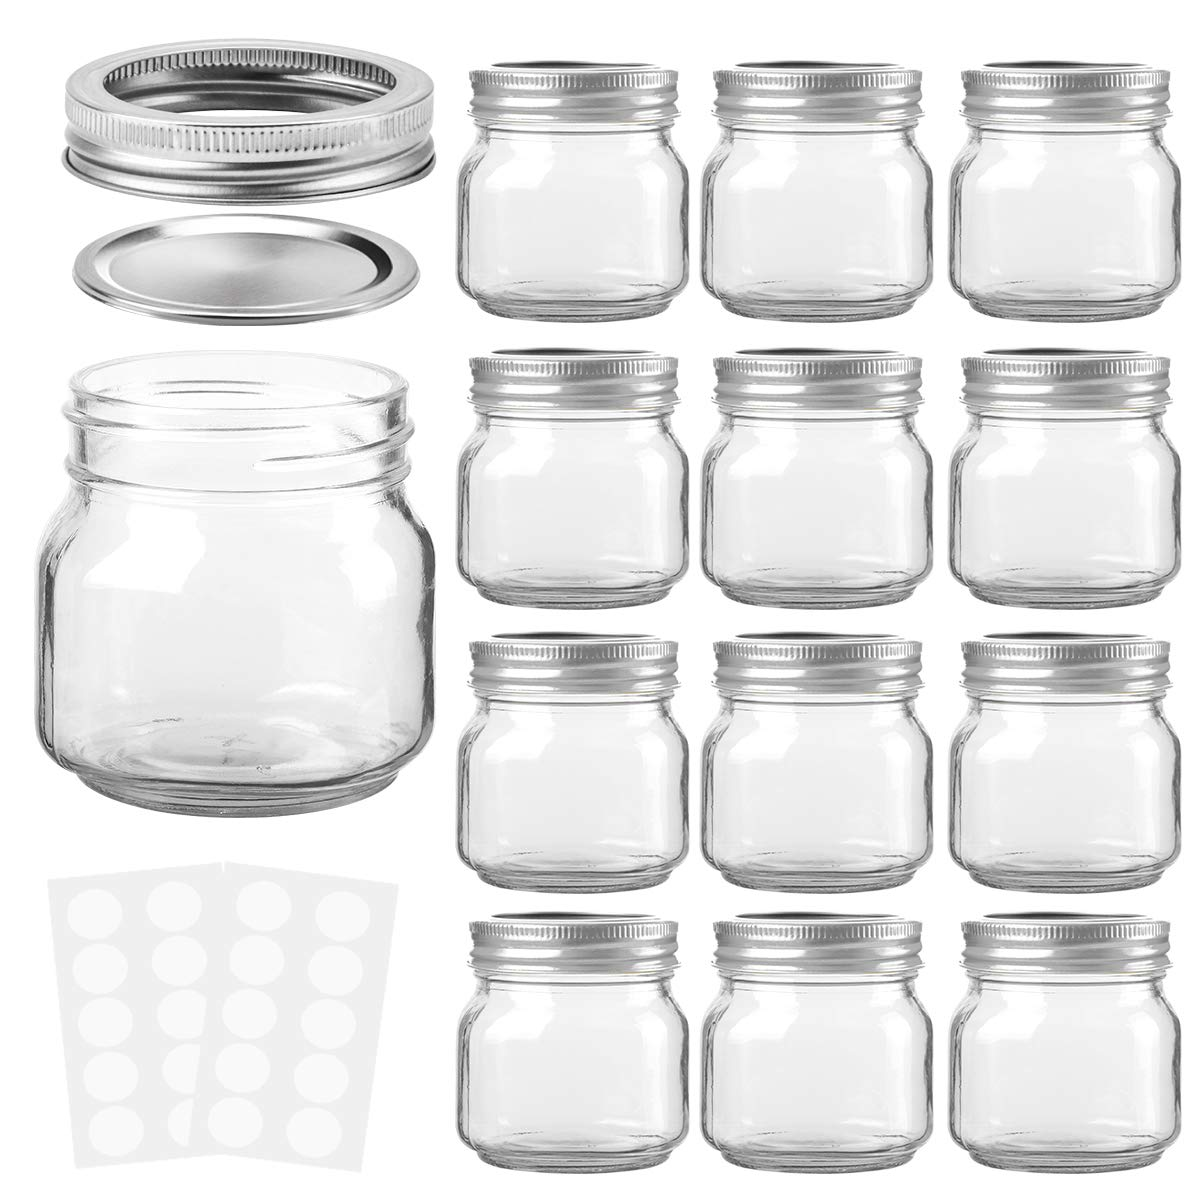 KAMOTA Mason Jars 8OZ With Regular Lids and Bands, Ideal for Jam, Honey, Wedding Favors, Shower Favors, Baby Foods, DIY Magnetic Spice Jars, 12 PACK, 20 Whiteboard Labels Included by KAMOTA